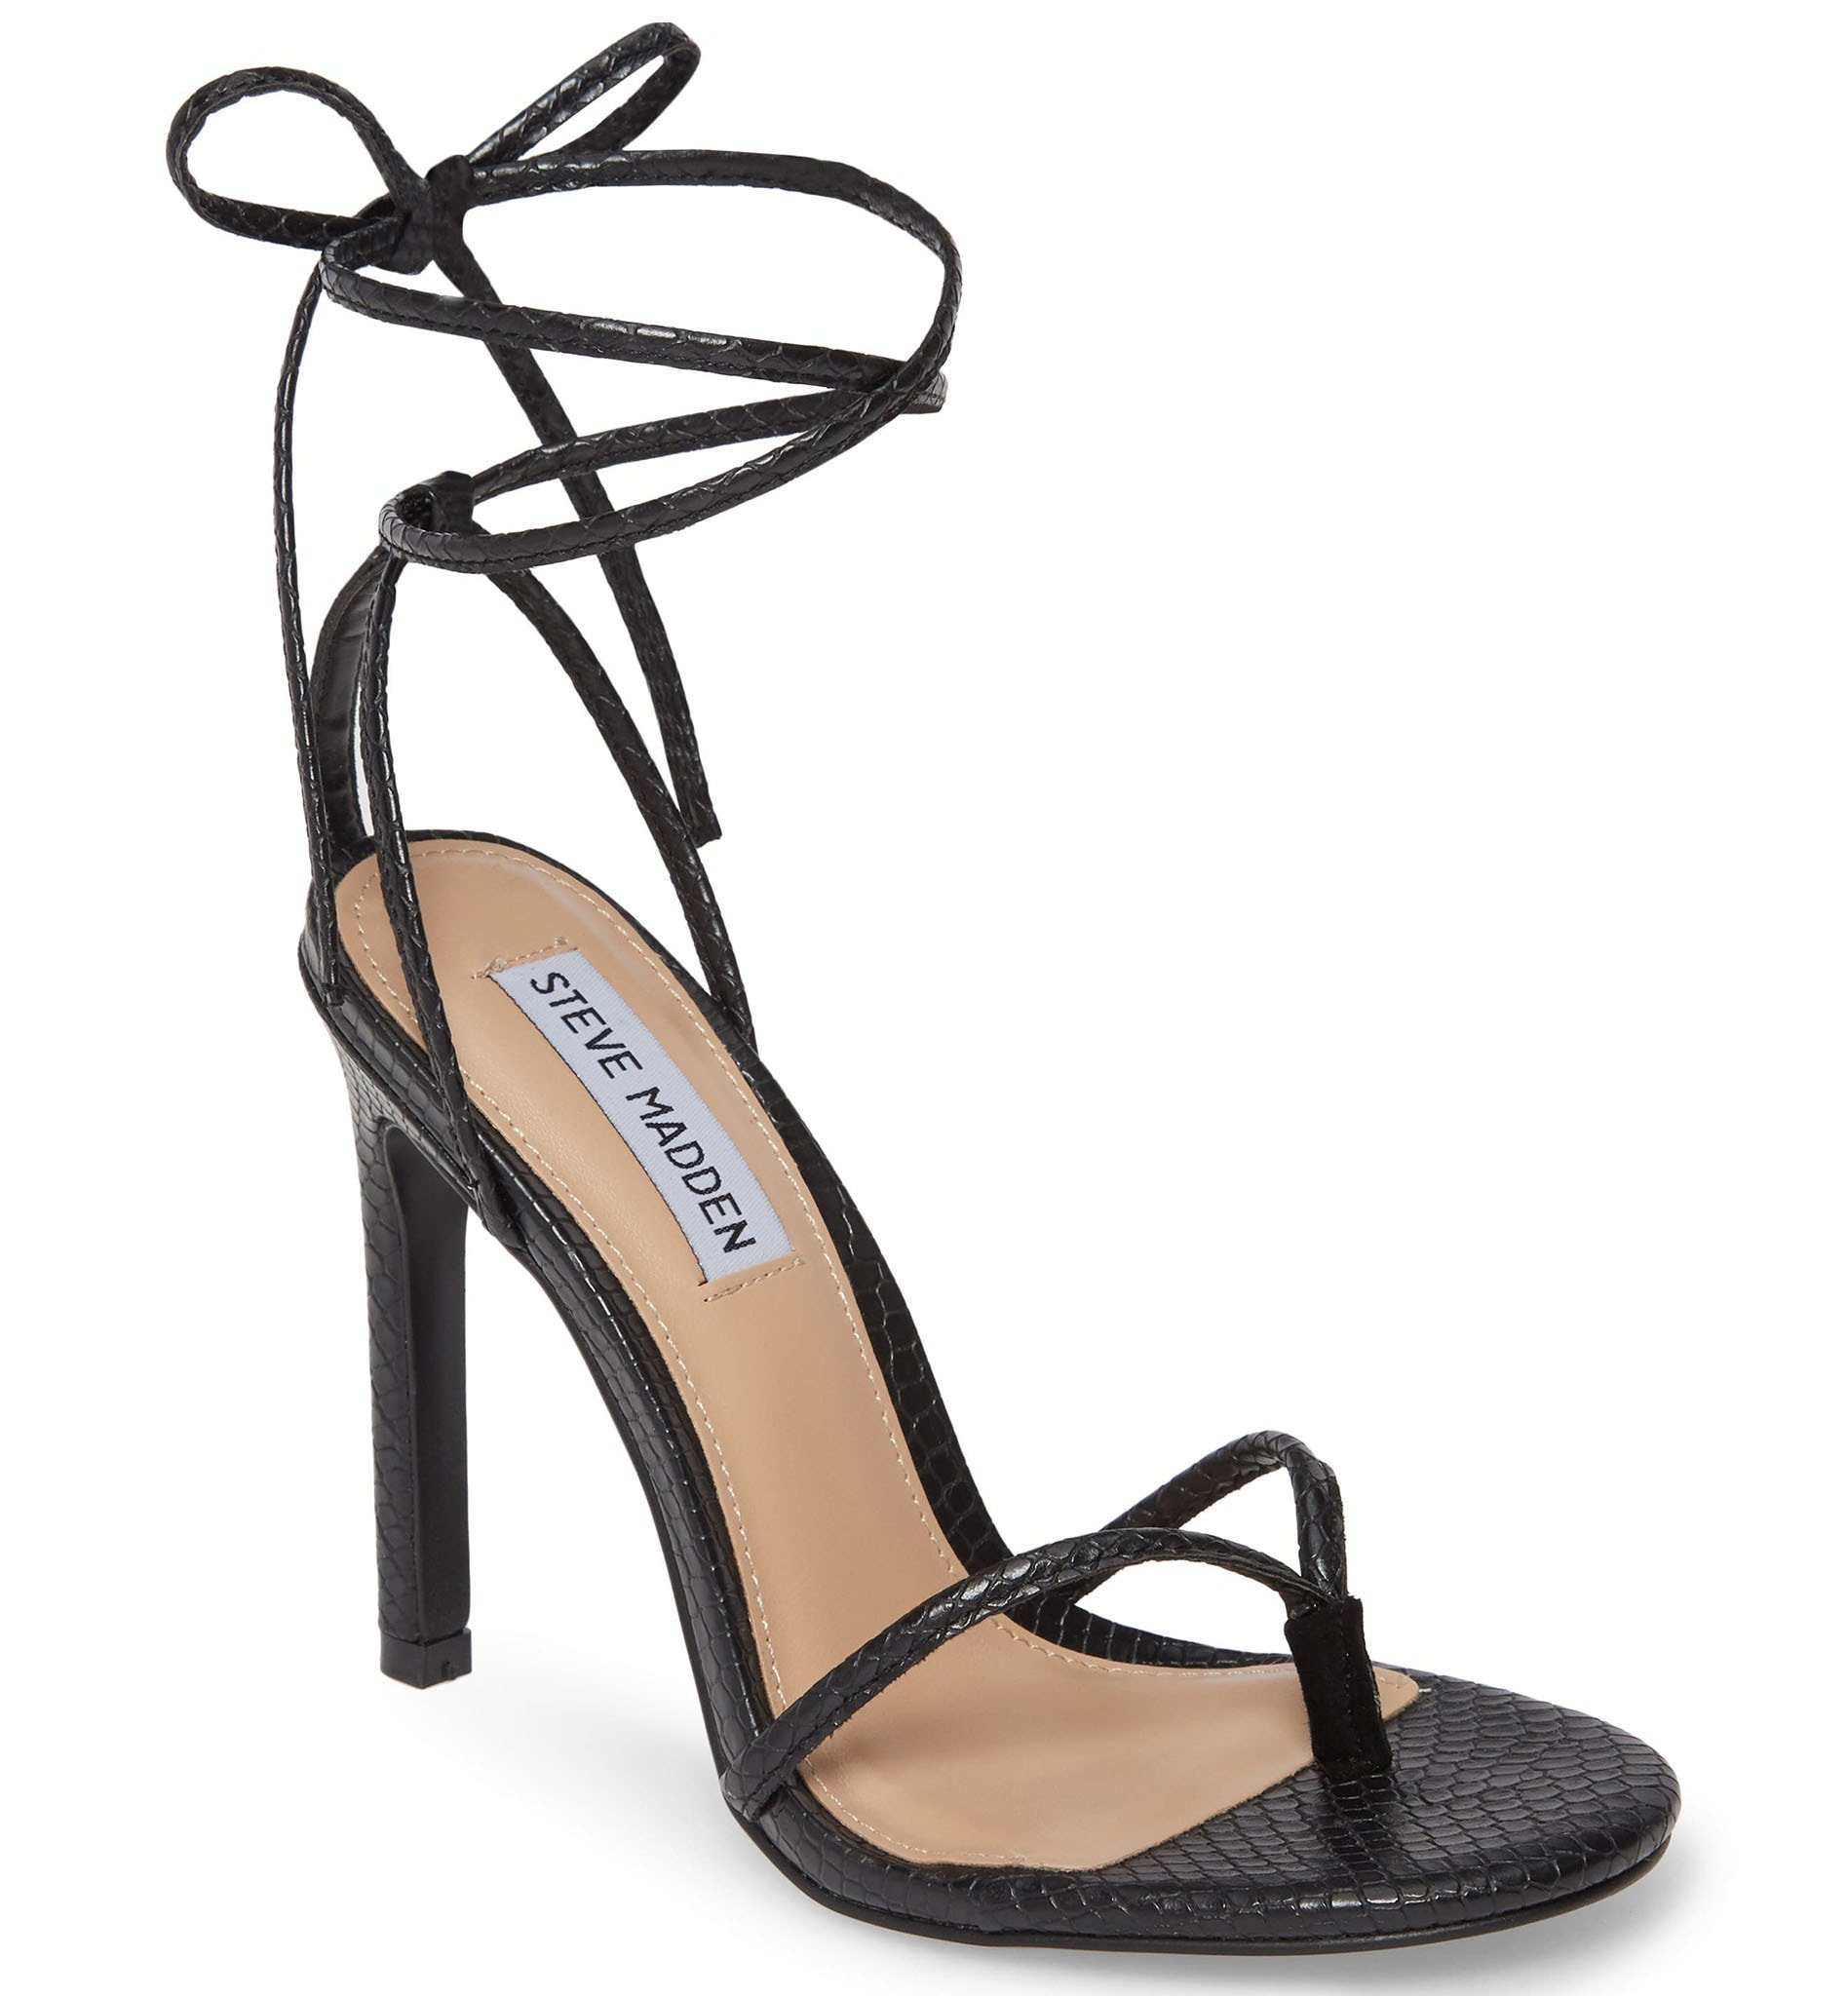 The Steve Madden Vada is defined by the thong toe post and wrap-around ankle straps